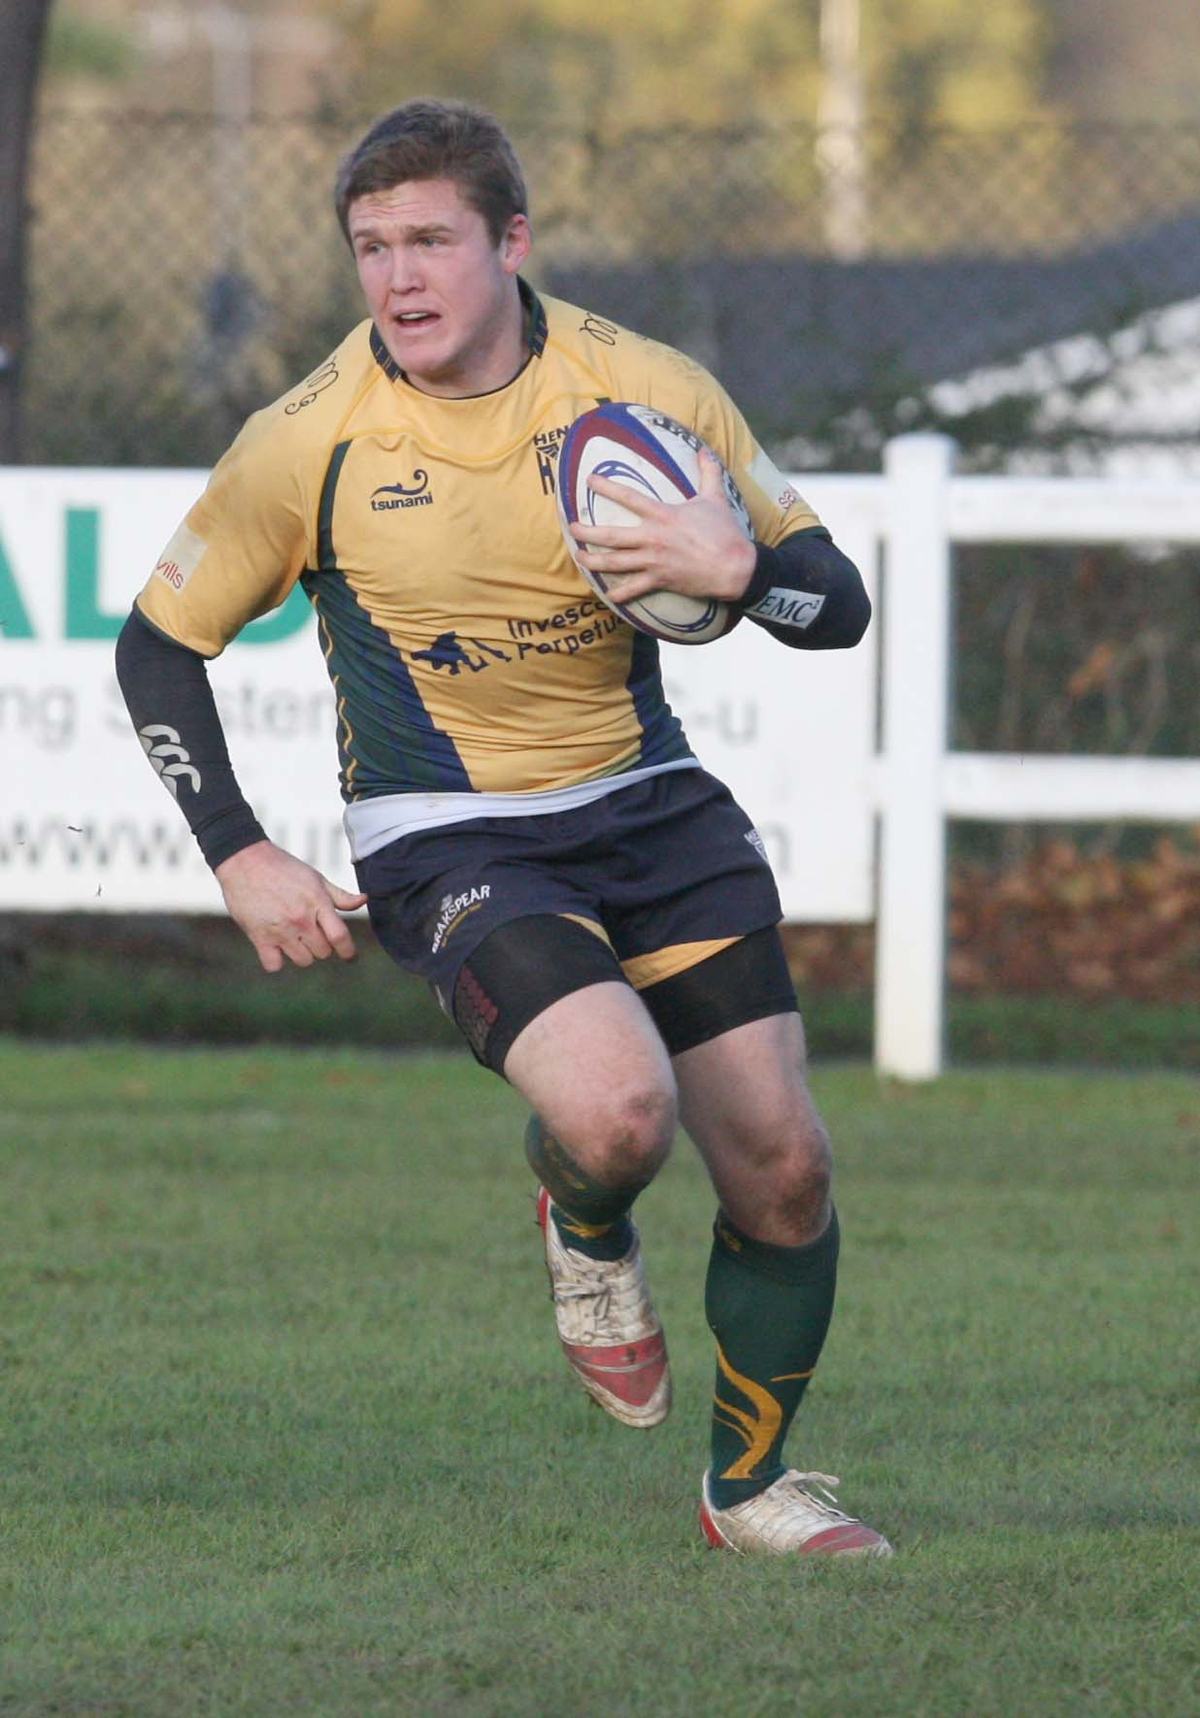 Henley's Tom Allen scored two tries after coming off the bench against Taunton